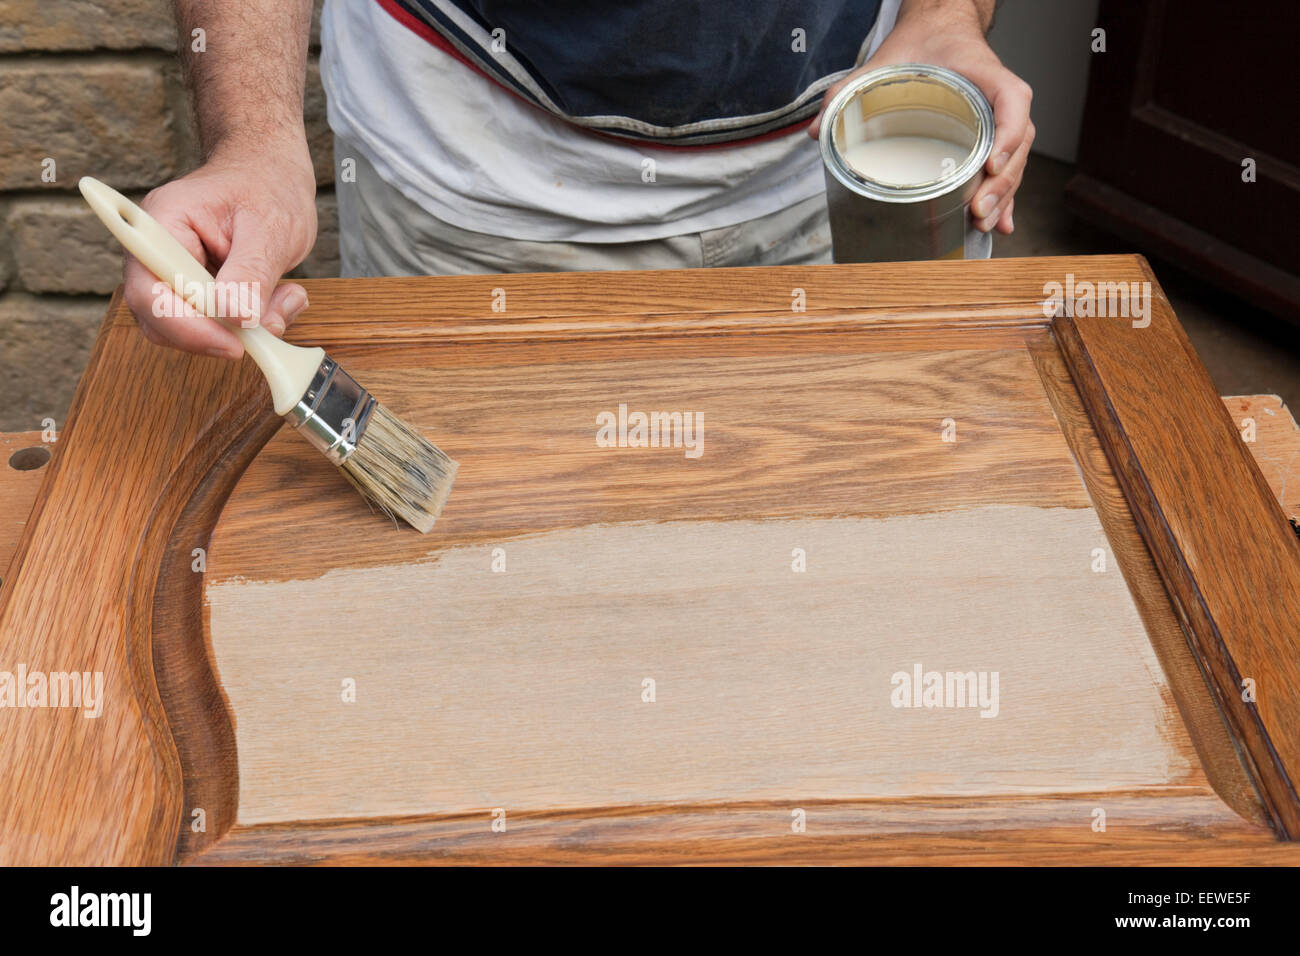 DIY enthusiast paint varnish onto sanded cupboard door - Stock Image & Door Varnish Stock Photos u0026 Door Varnish Stock Images - Alamy